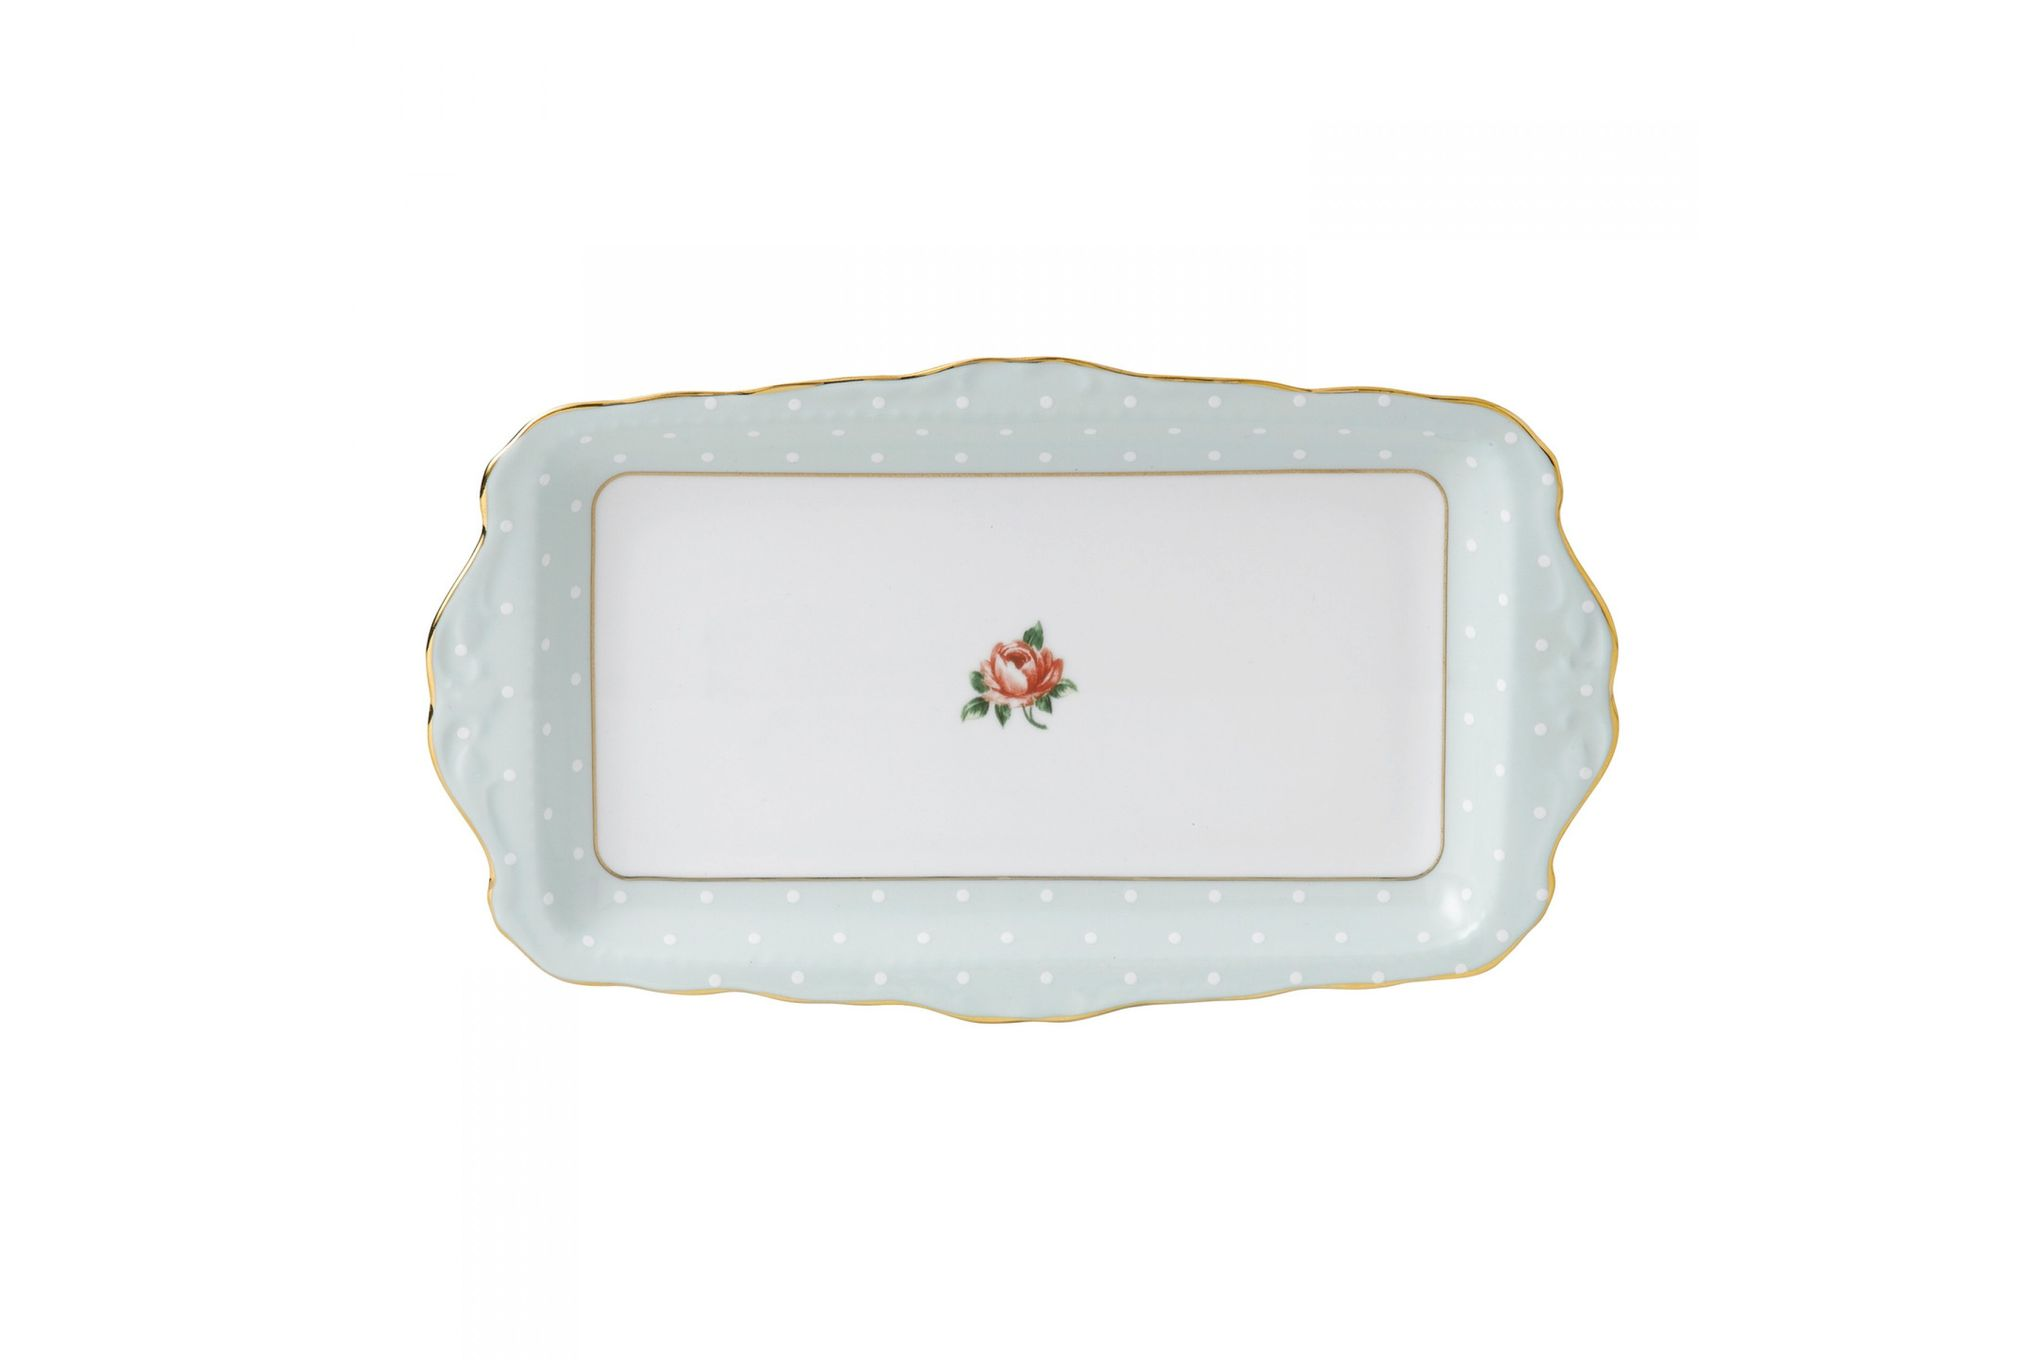 Royal Albert Polka Rose Sandwich Tray Boxed thumb 1